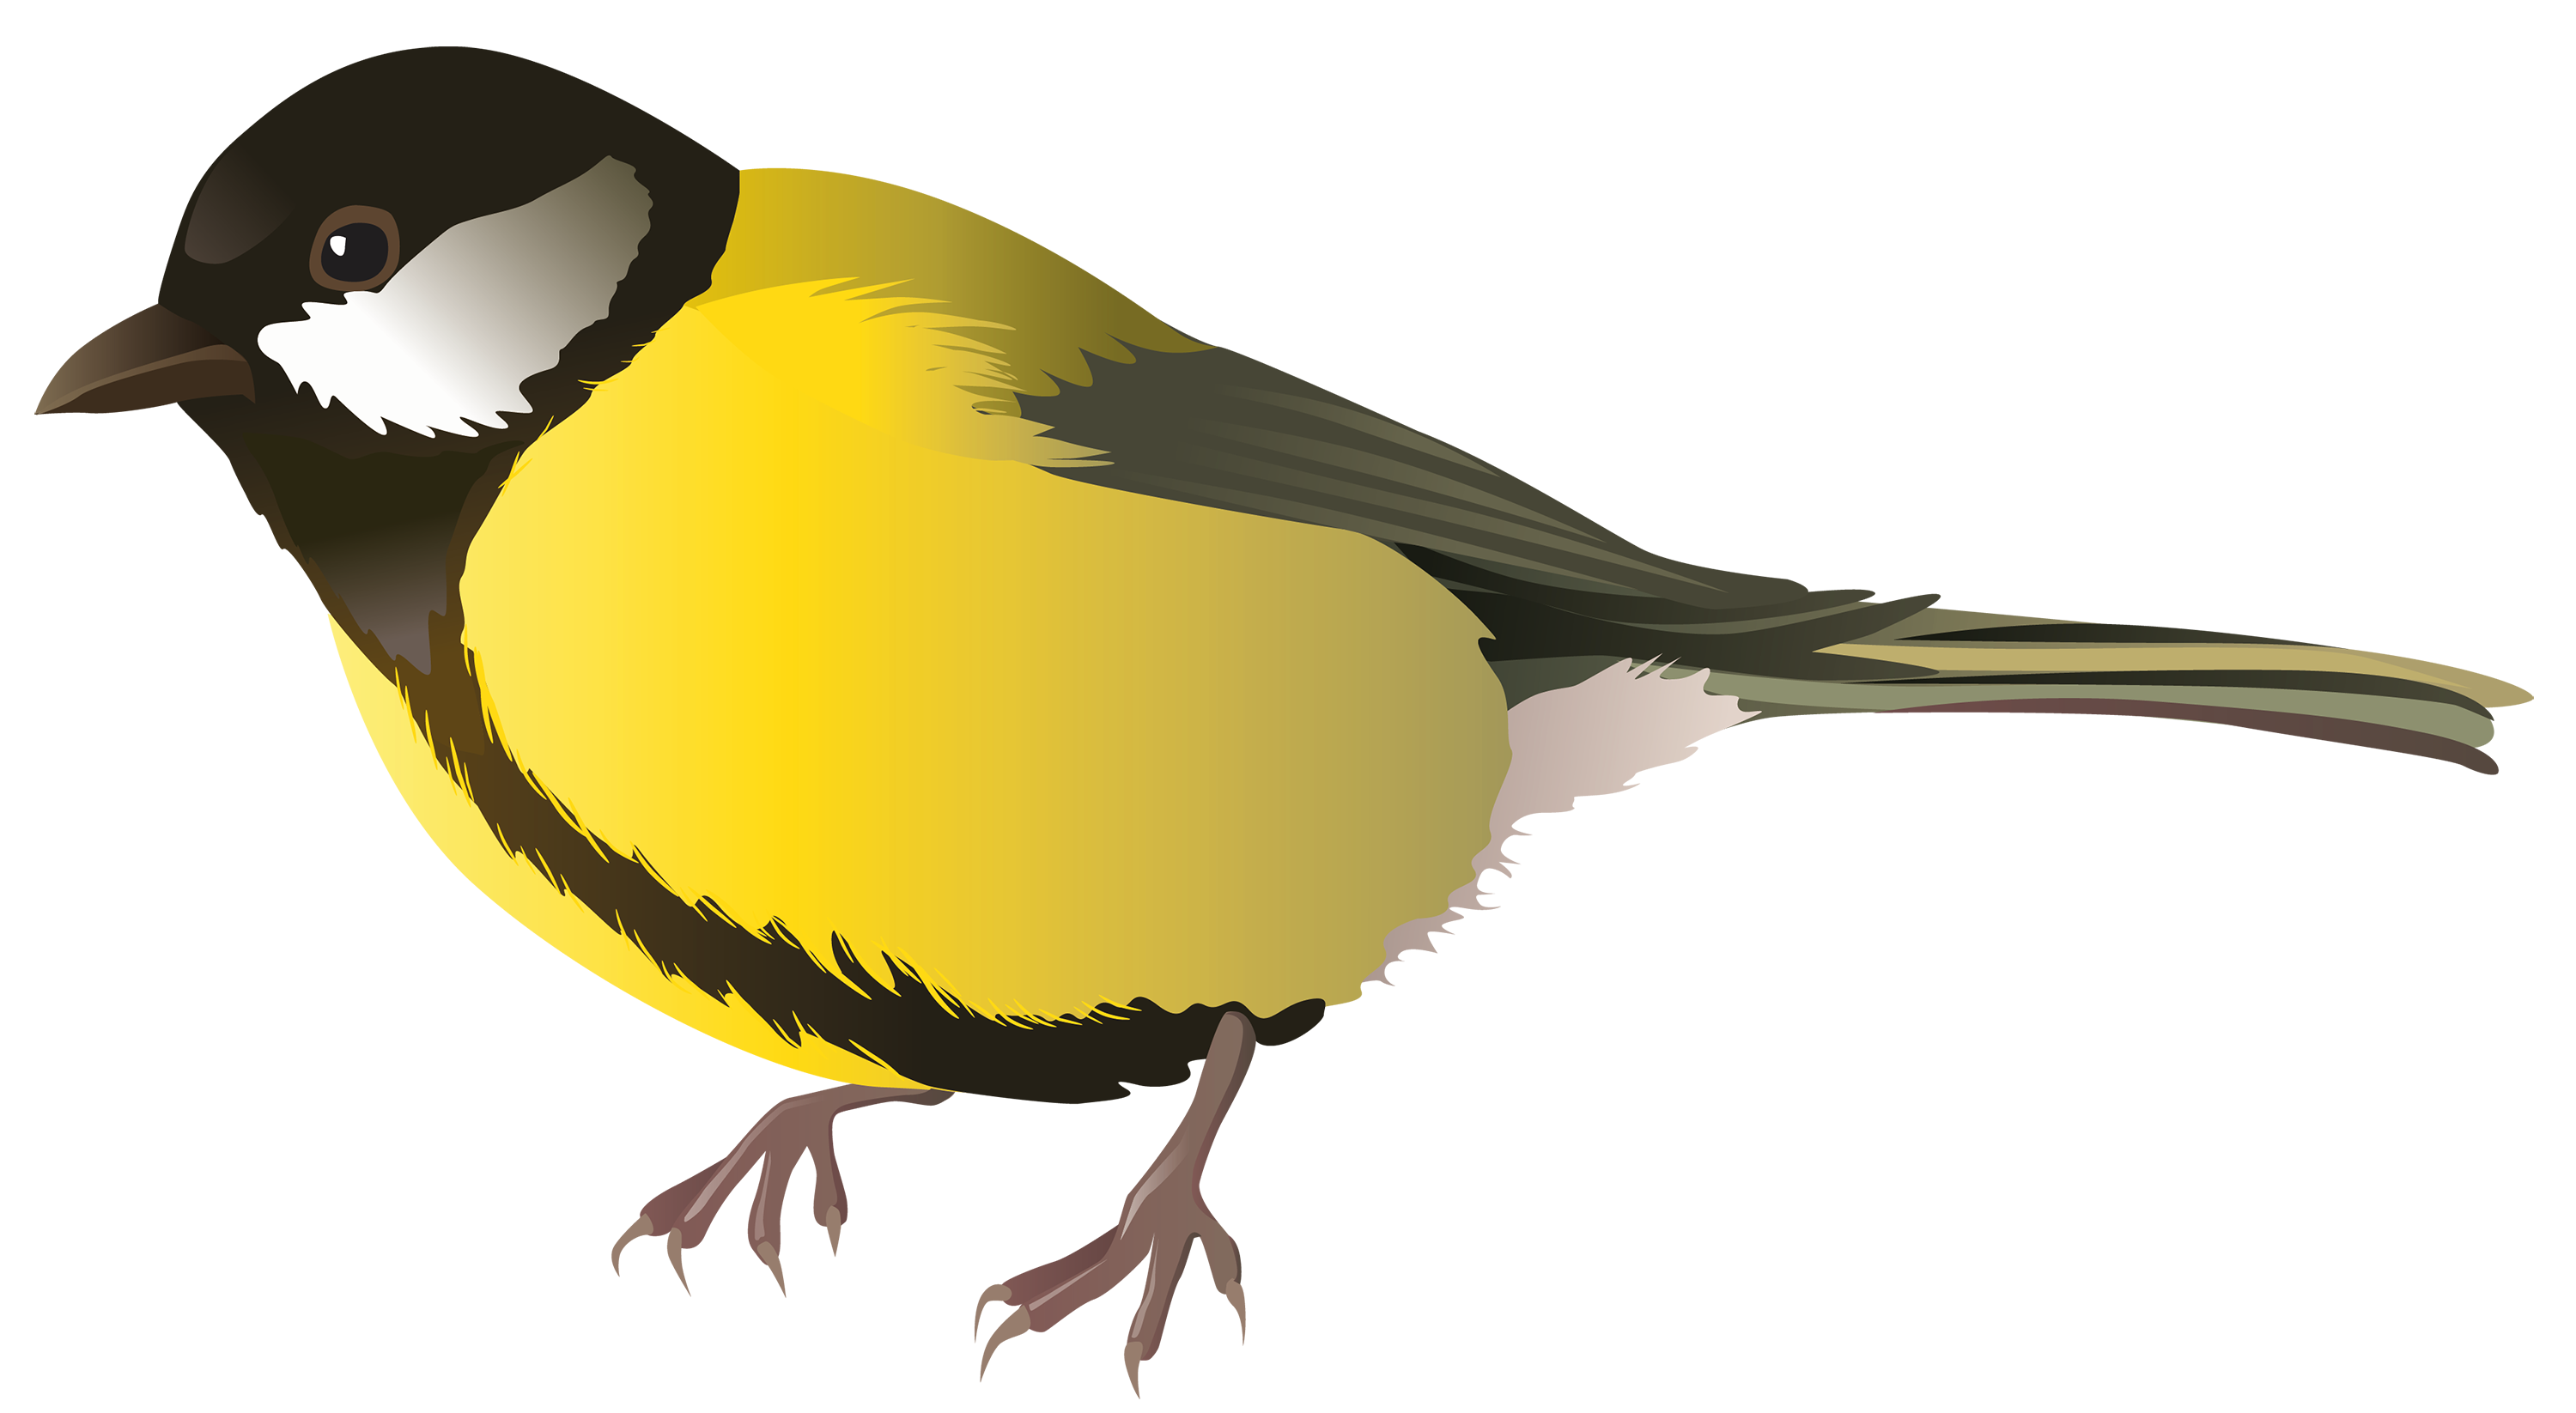 Realistic bird clipart side clipart free stock Free Realistic Birds Cliparts, Download Free Clip Art, Free ... clipart free stock